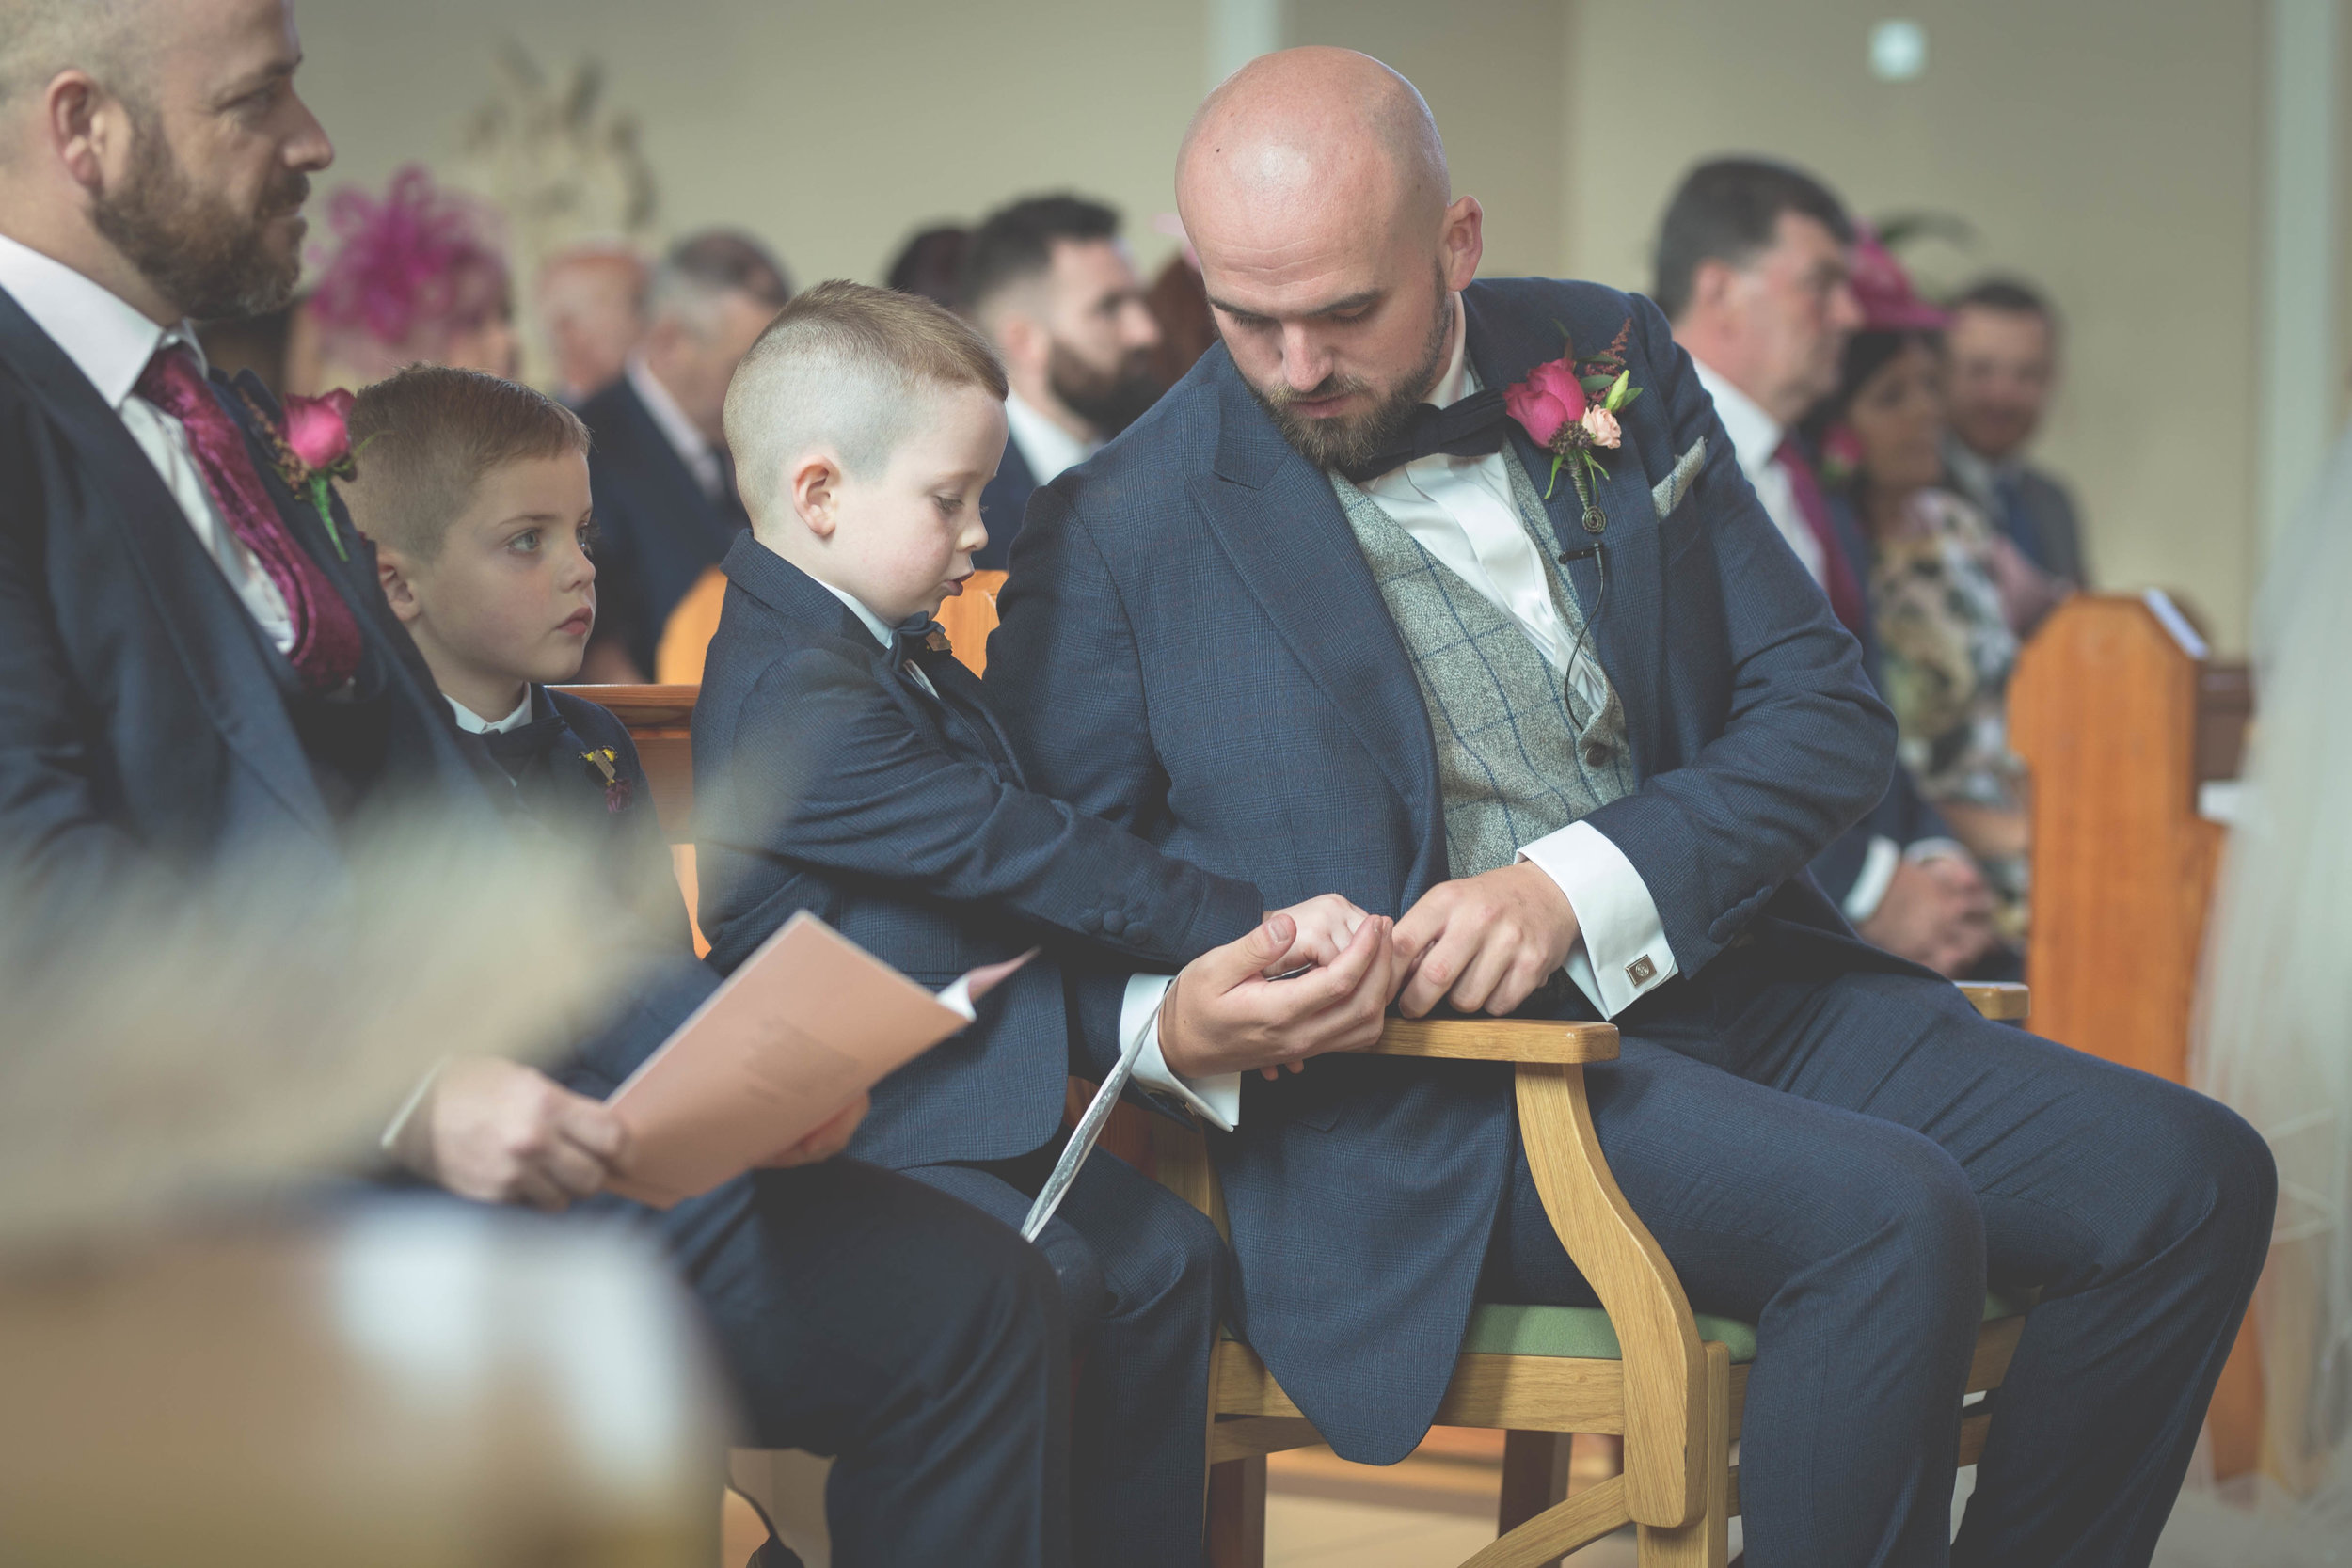 Aisling & Andy - Ceremony-34.jpg